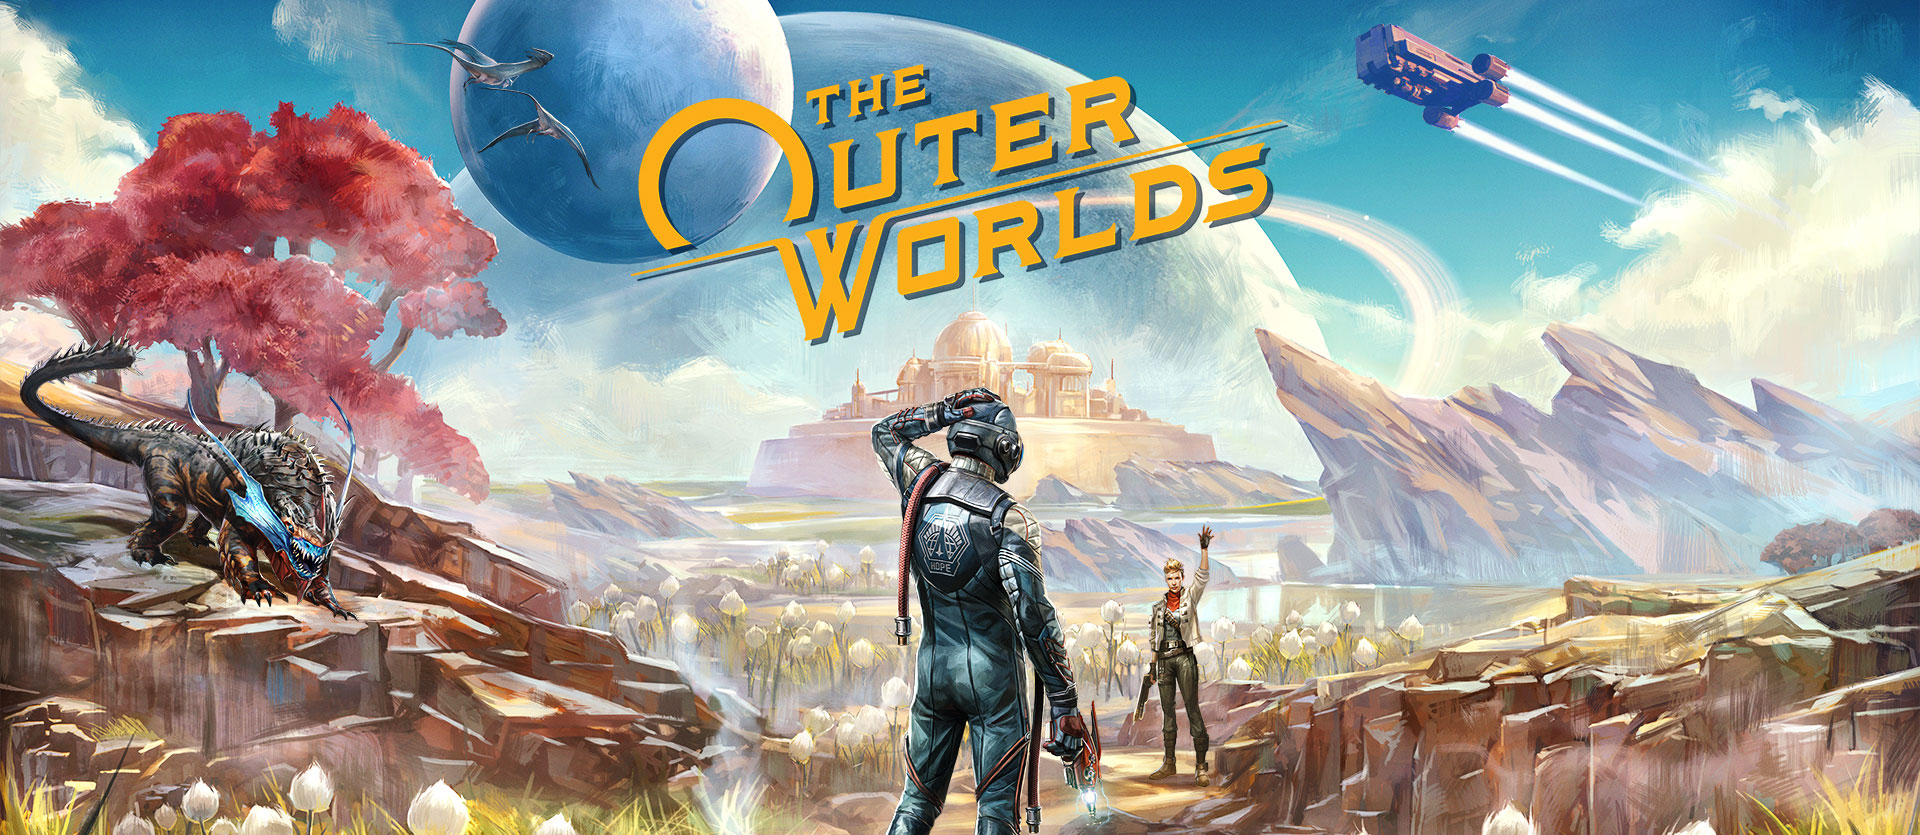 The Outer Worlds, a woman greets a confused character on an alien planet